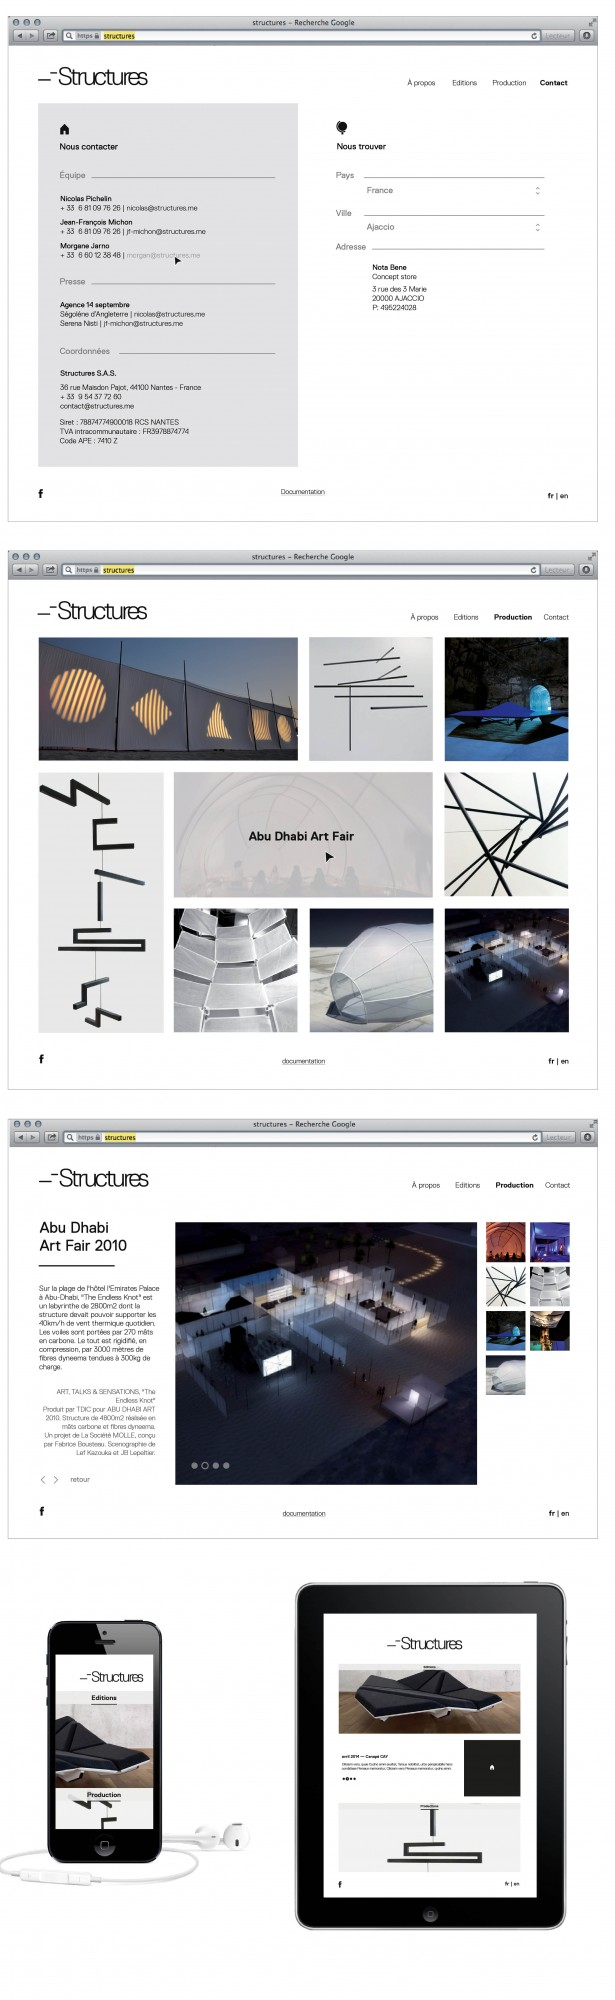 structures3